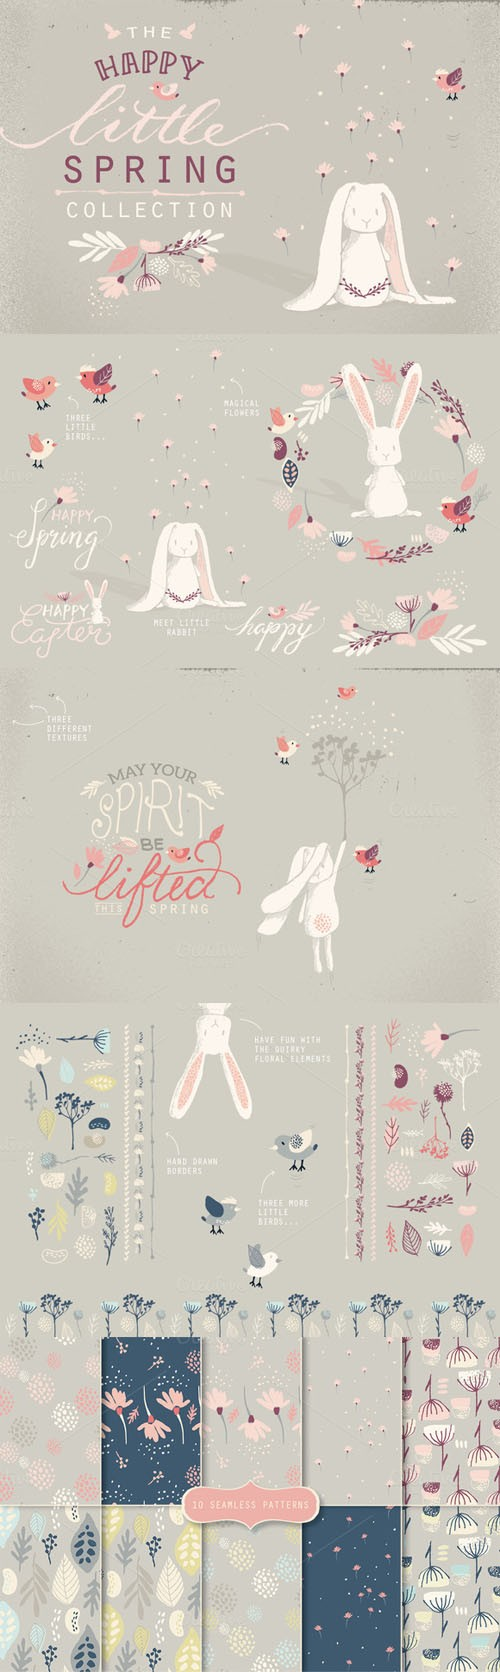 Creativemarket - The Happy Little Spring Collection 214251